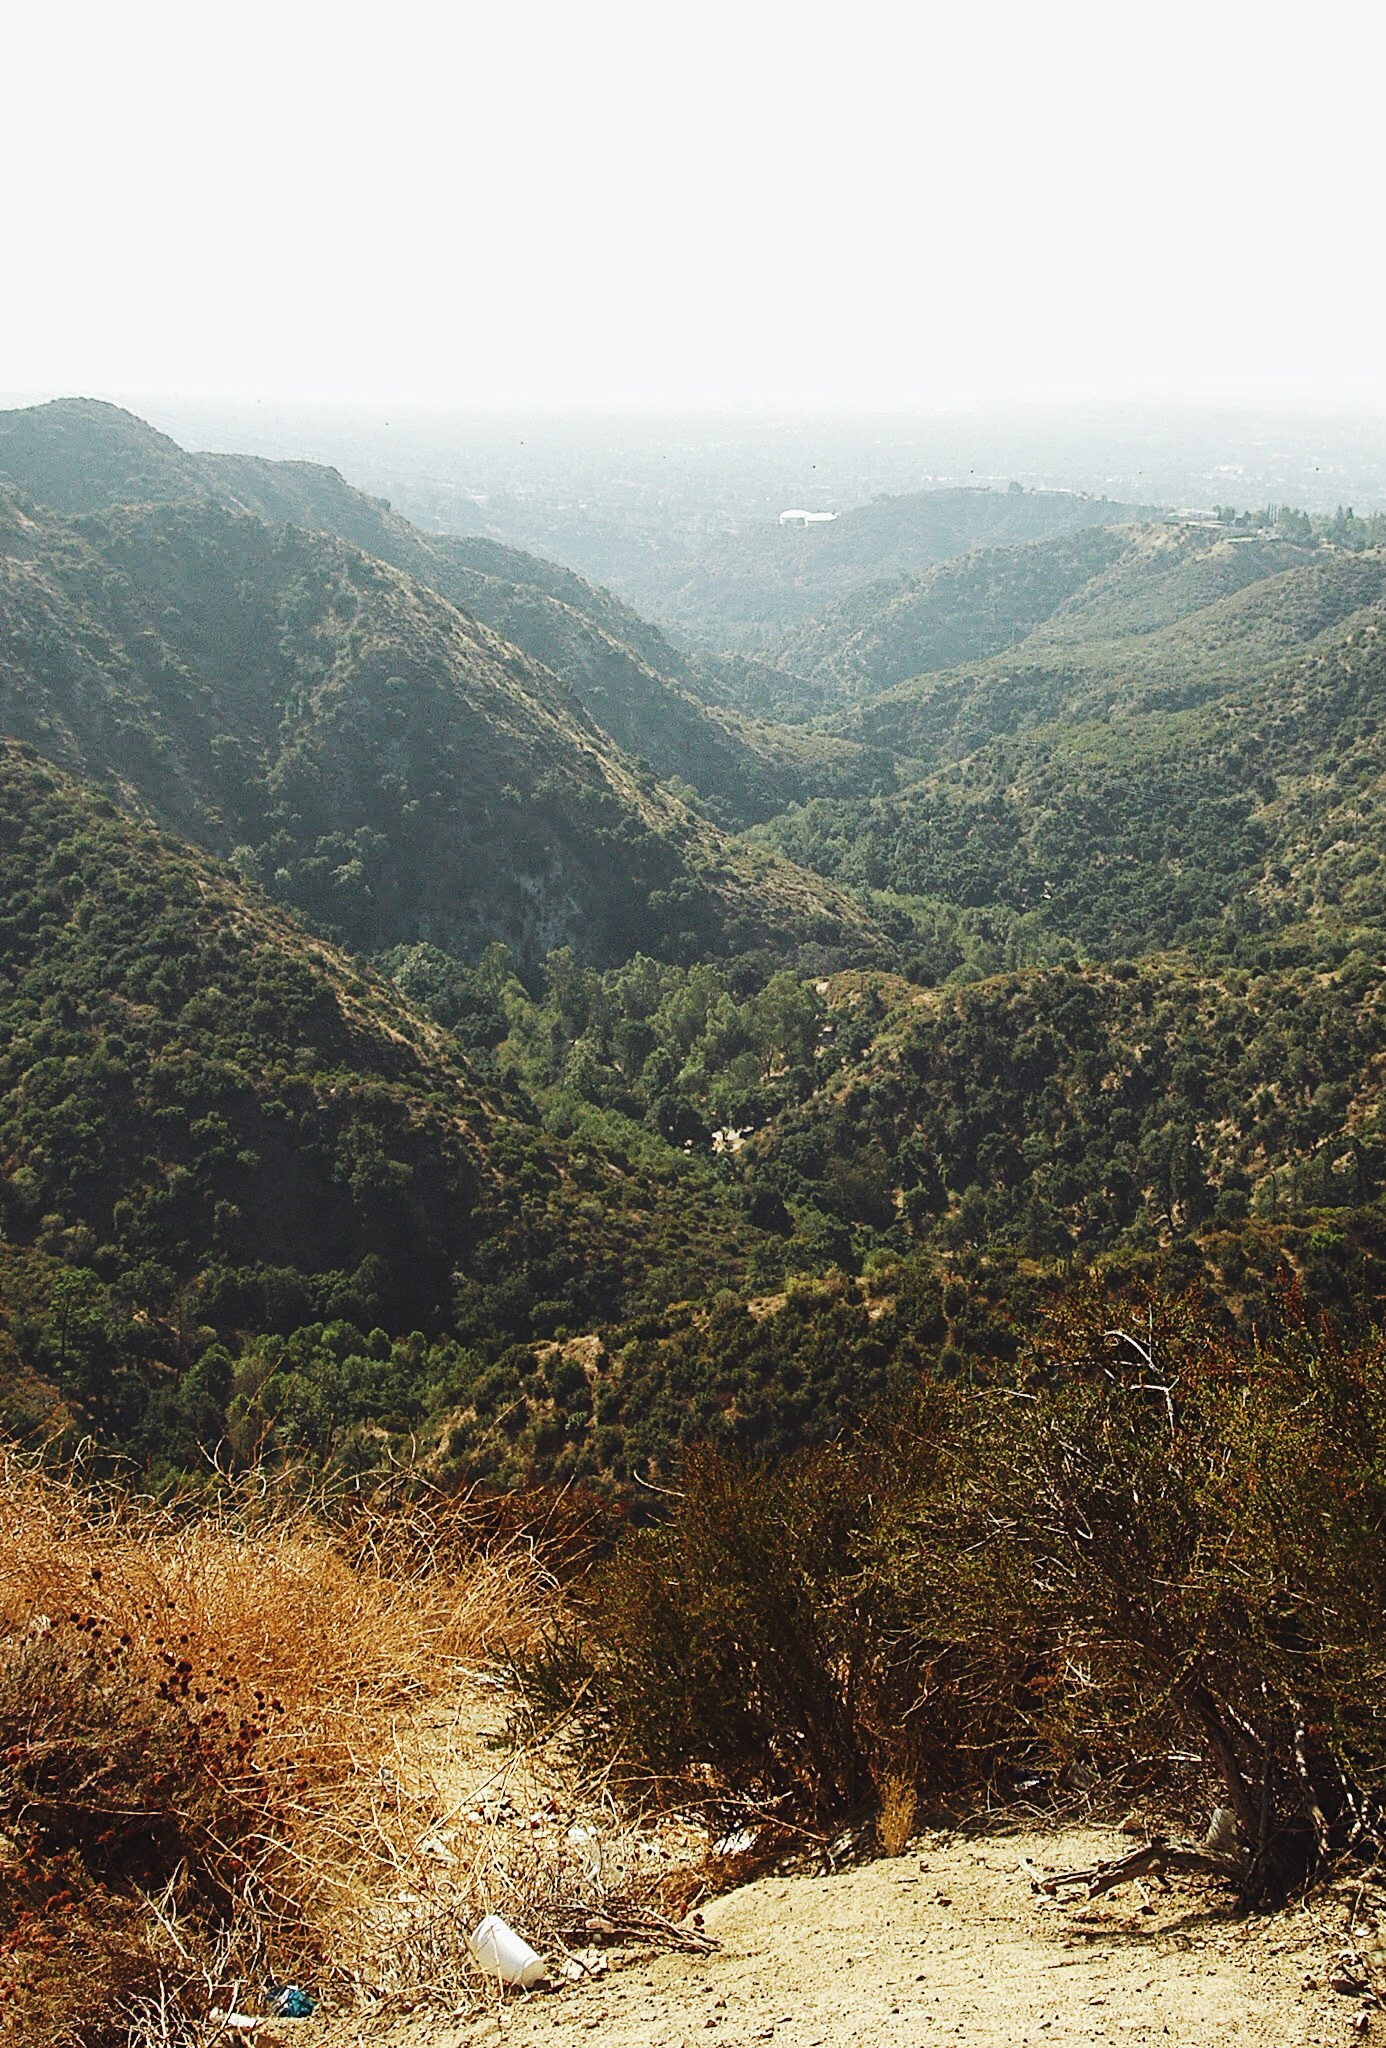 View from Angeles National Forest